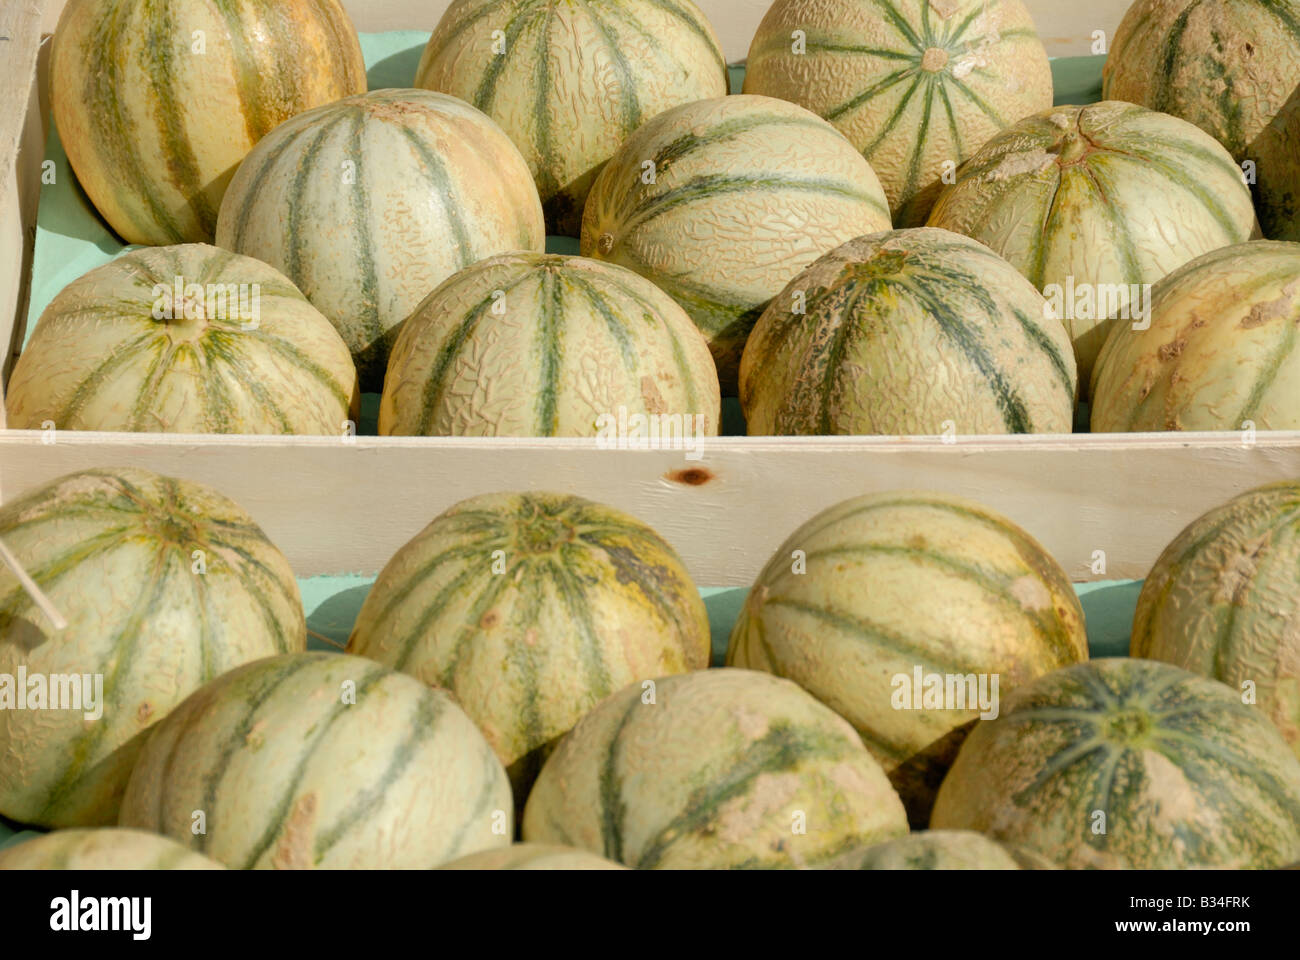 Stock photo of trays of Melons for sale at a farmers marker in France - Stock Image